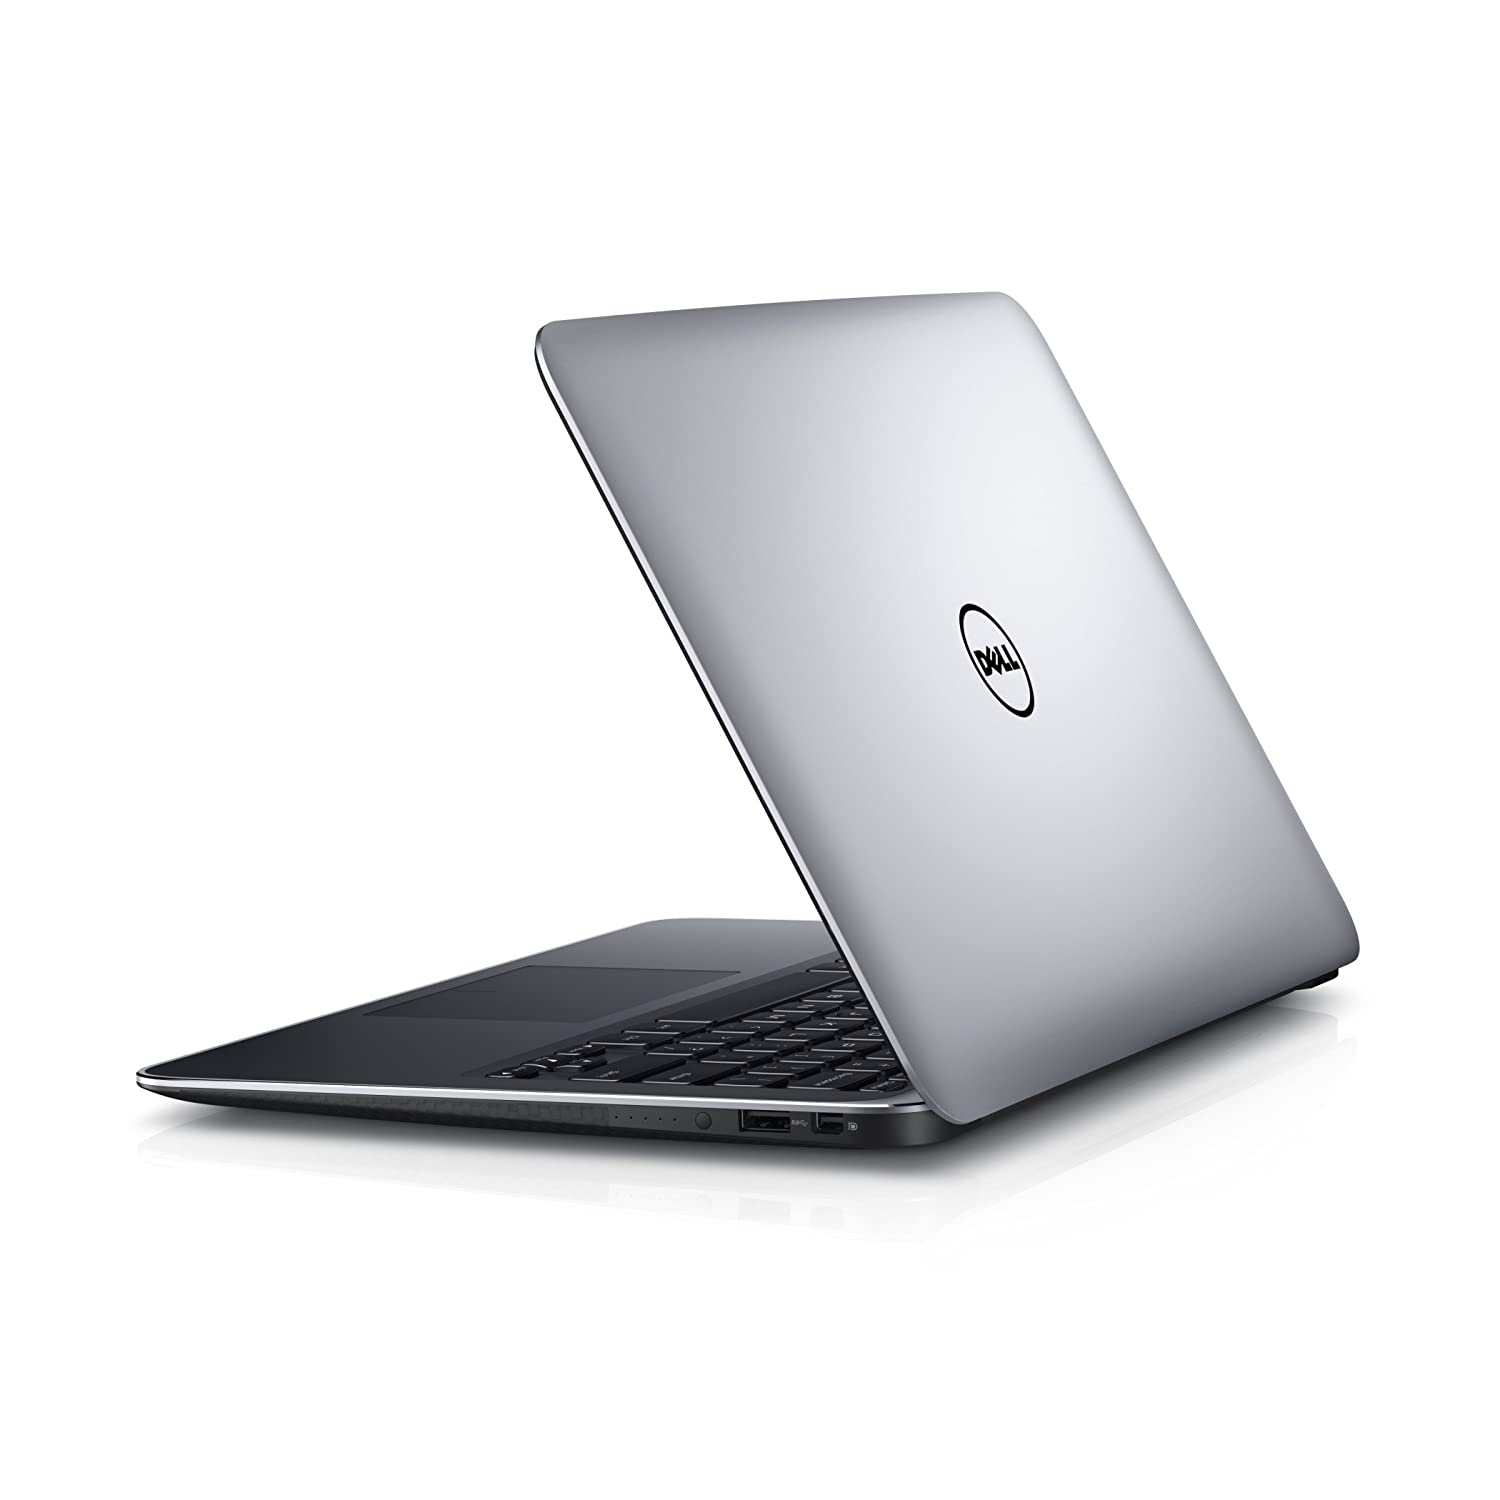 dell xps notebook user manual user guide manual that easy to read u2022 rh wowomg co dell xps 15 service manual dell xps 15 9530 service manual